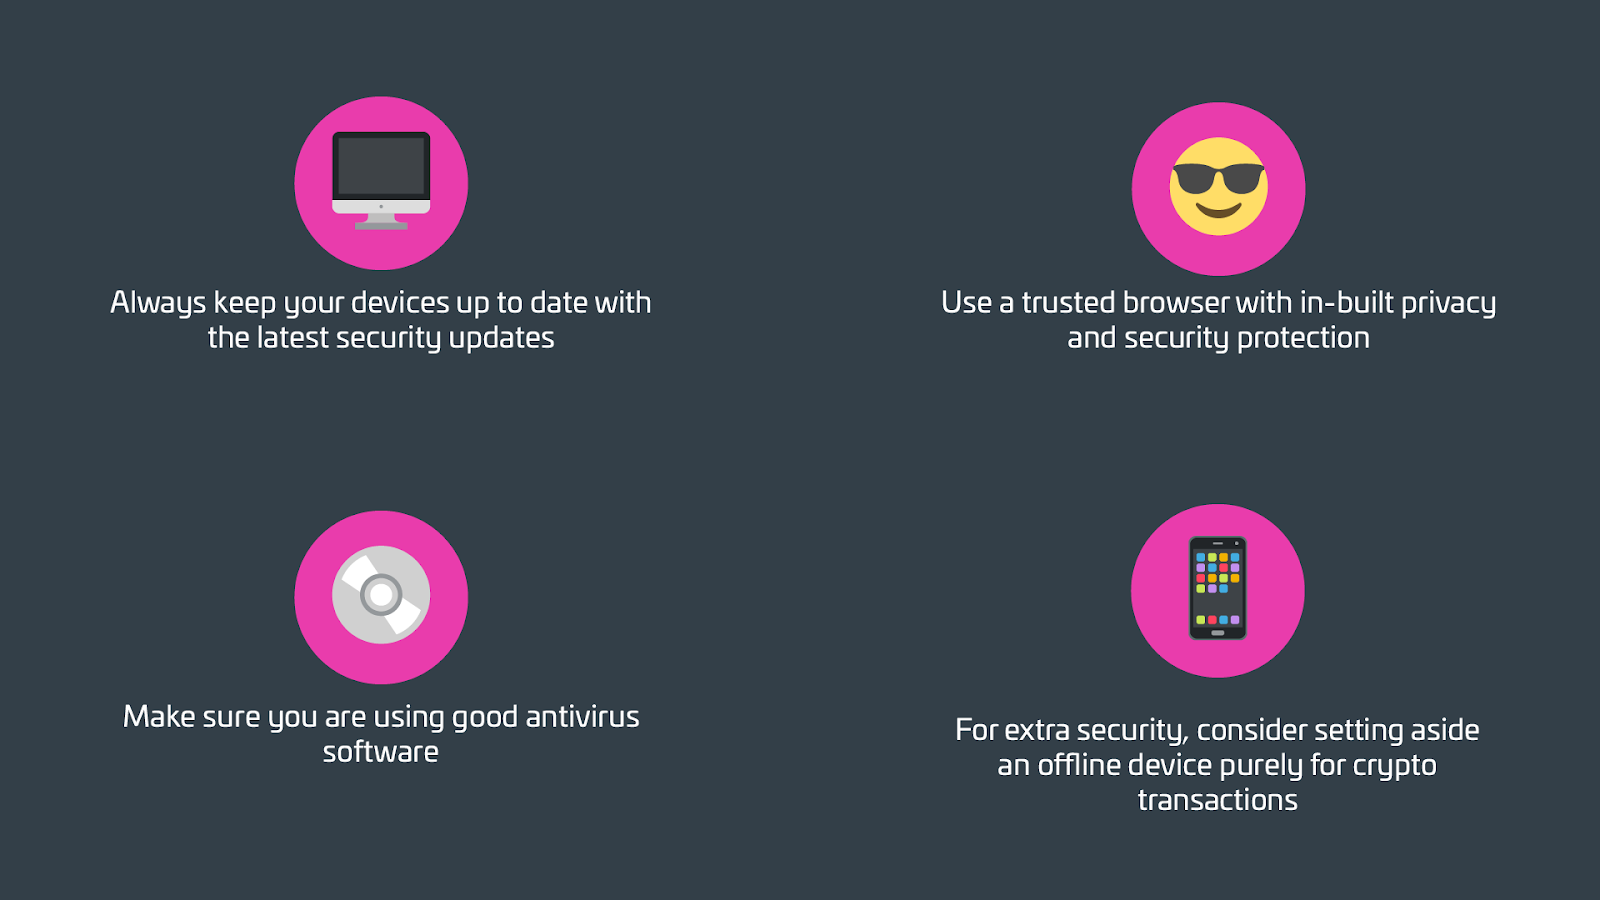 Always keep your devices up to date with the latest security updates Use a trusted browser with in-built privacy and security protection  Make sure you are using good antivirus software For extra security, consider setting aside an offline device purely for crypto transactions